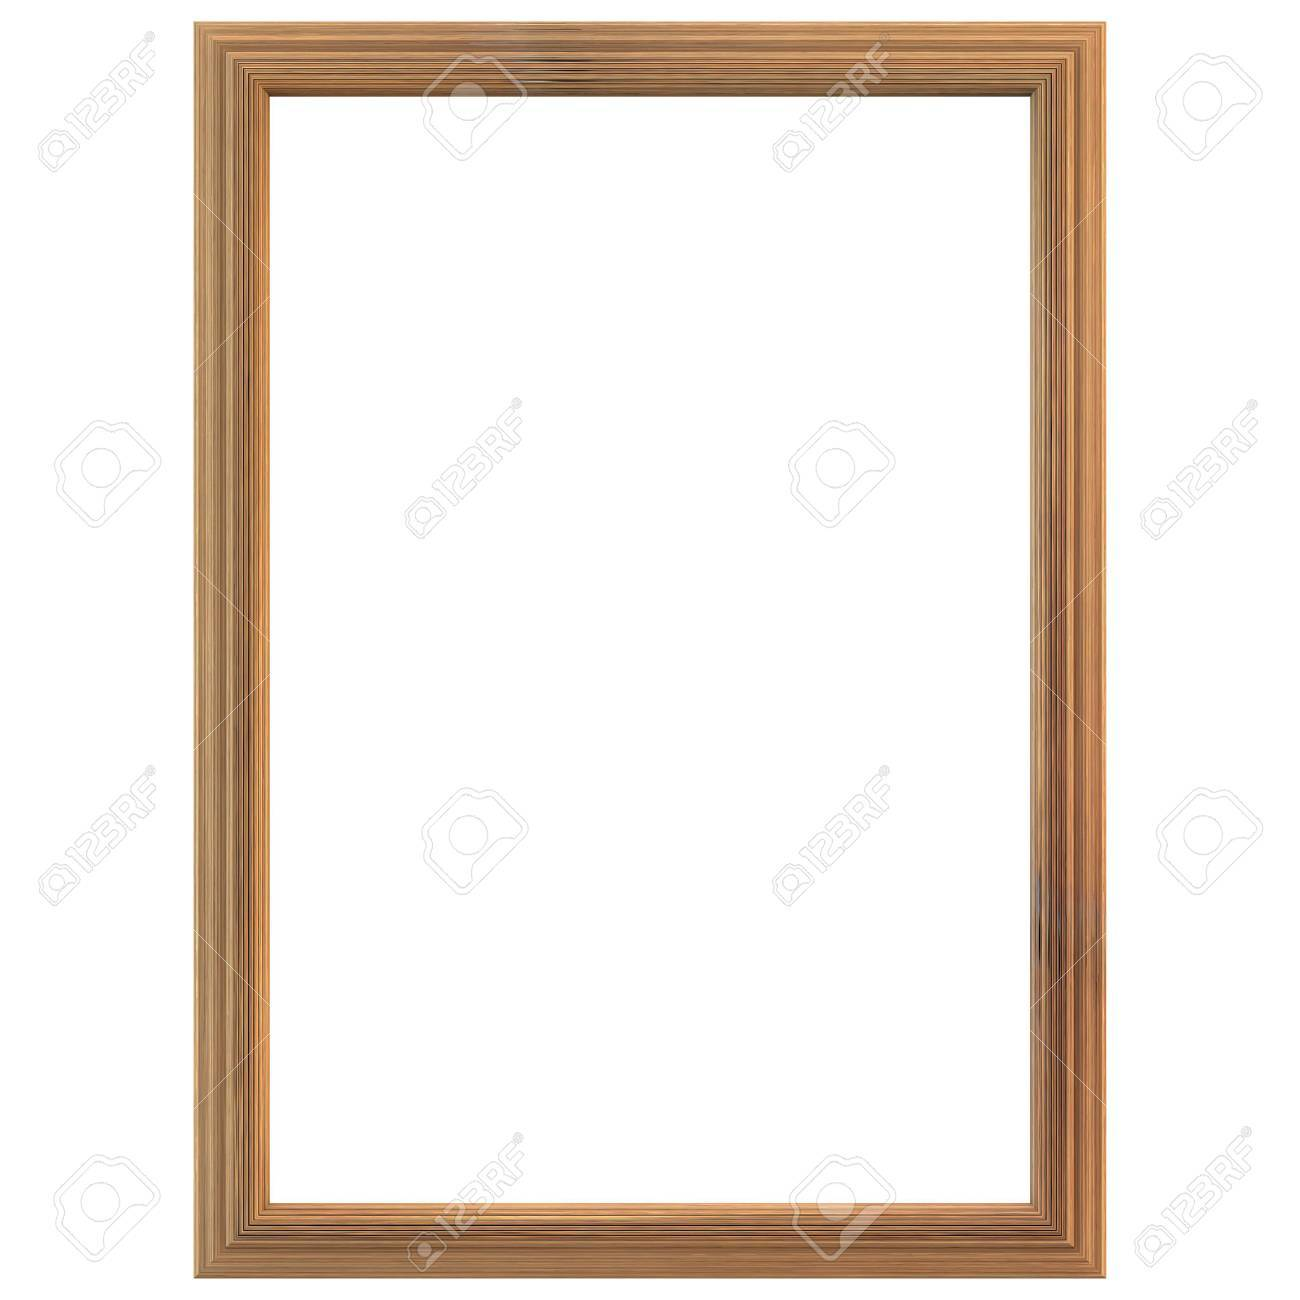 Wooden frame isolated on white background. Clipping path included. - 46667772